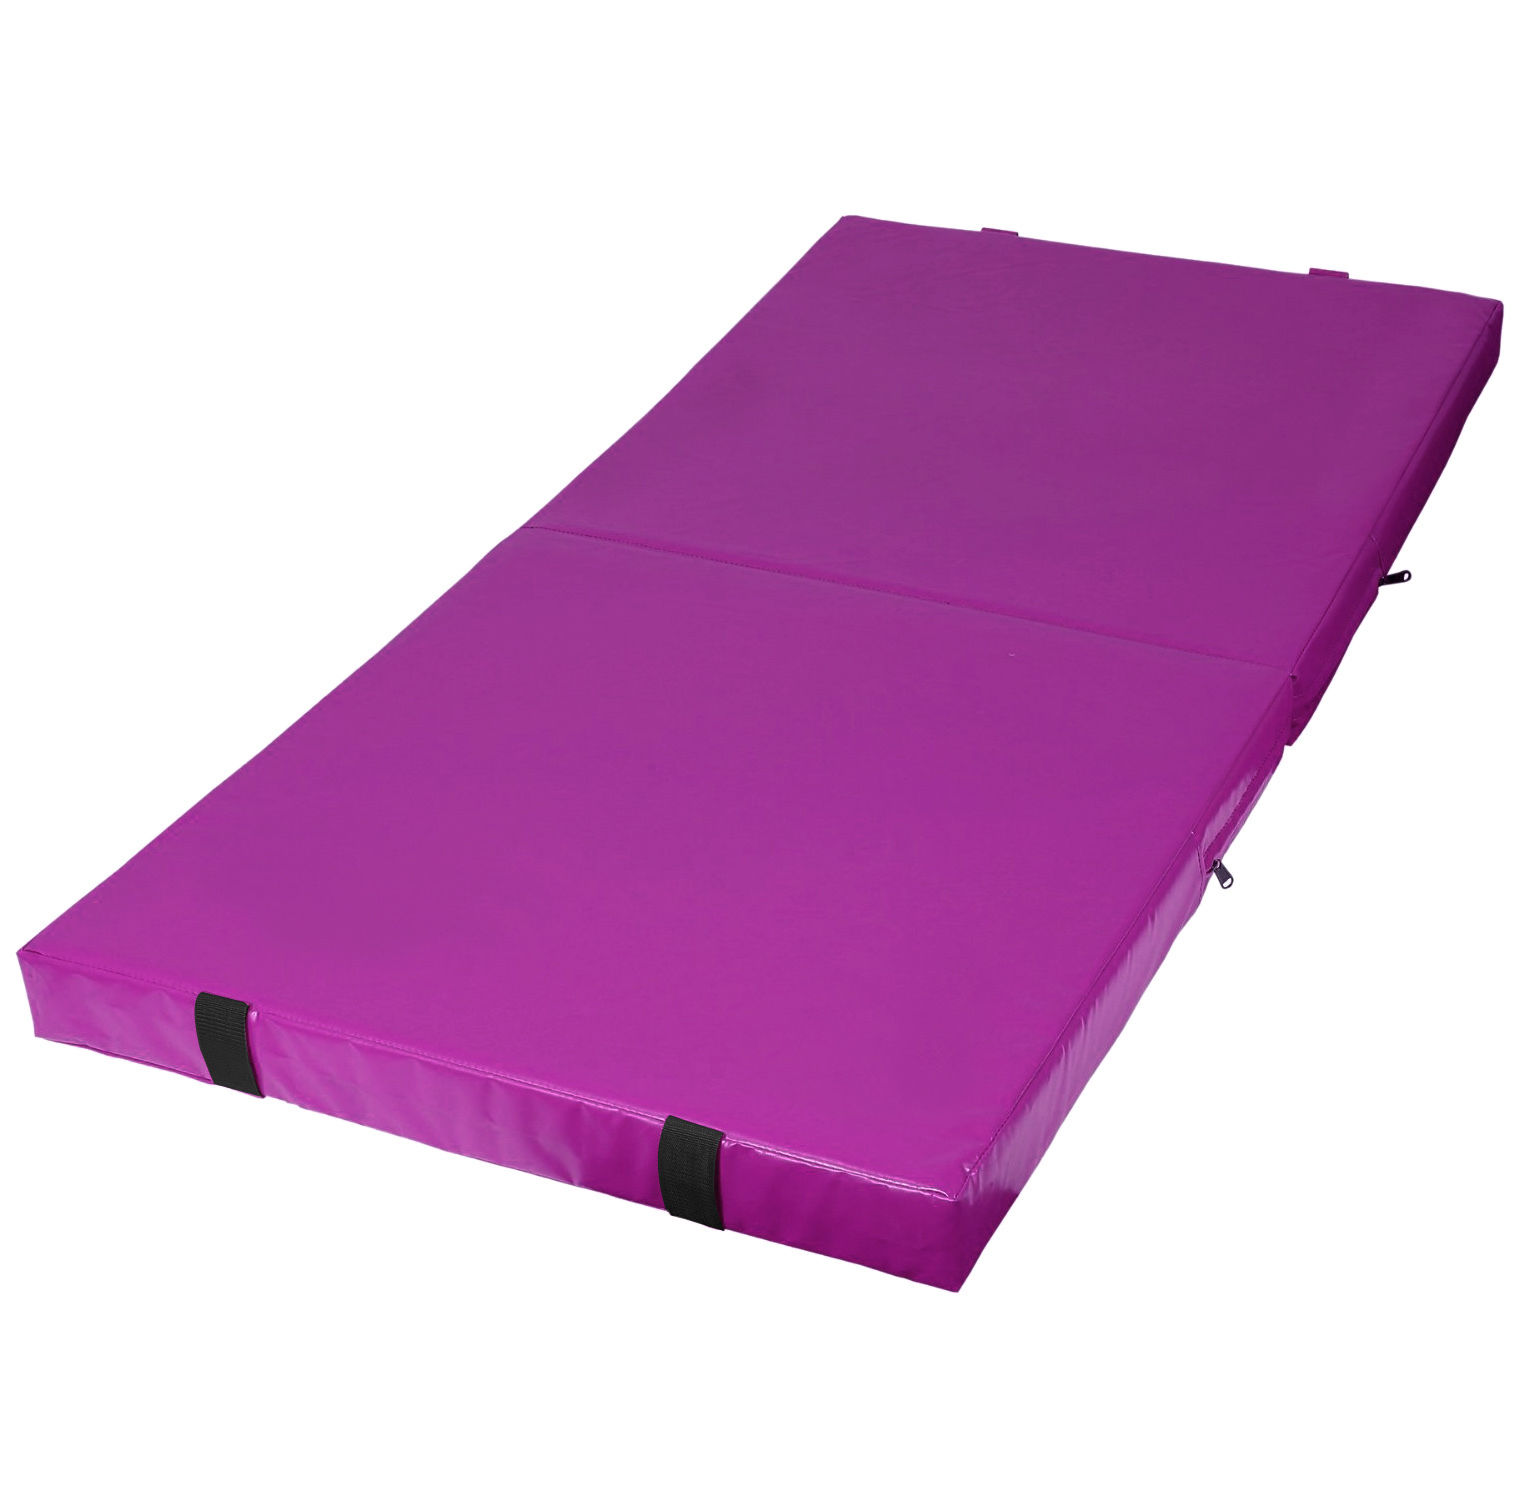 mats pinterest pin pink better mat gymnastics